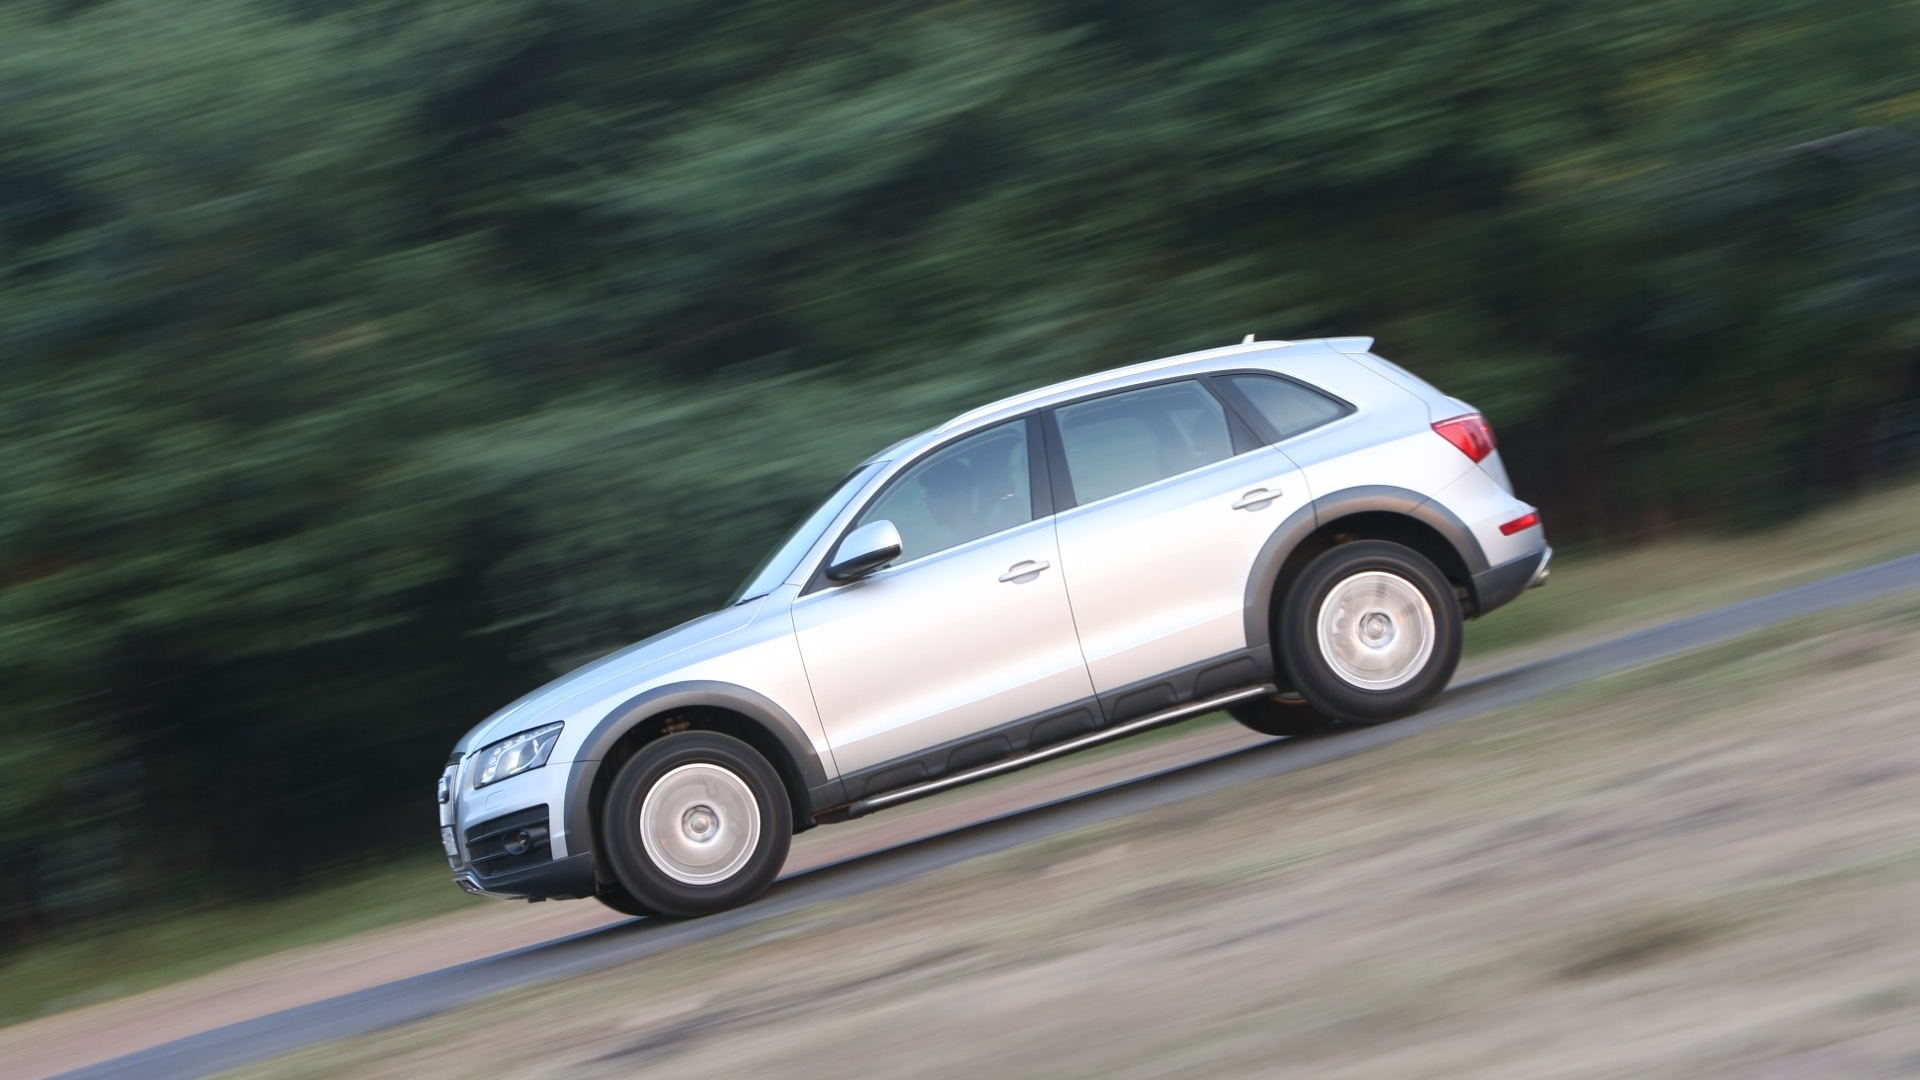 audi q5 2018 price mileage reviews specification gallery overdrive. Black Bedroom Furniture Sets. Home Design Ideas